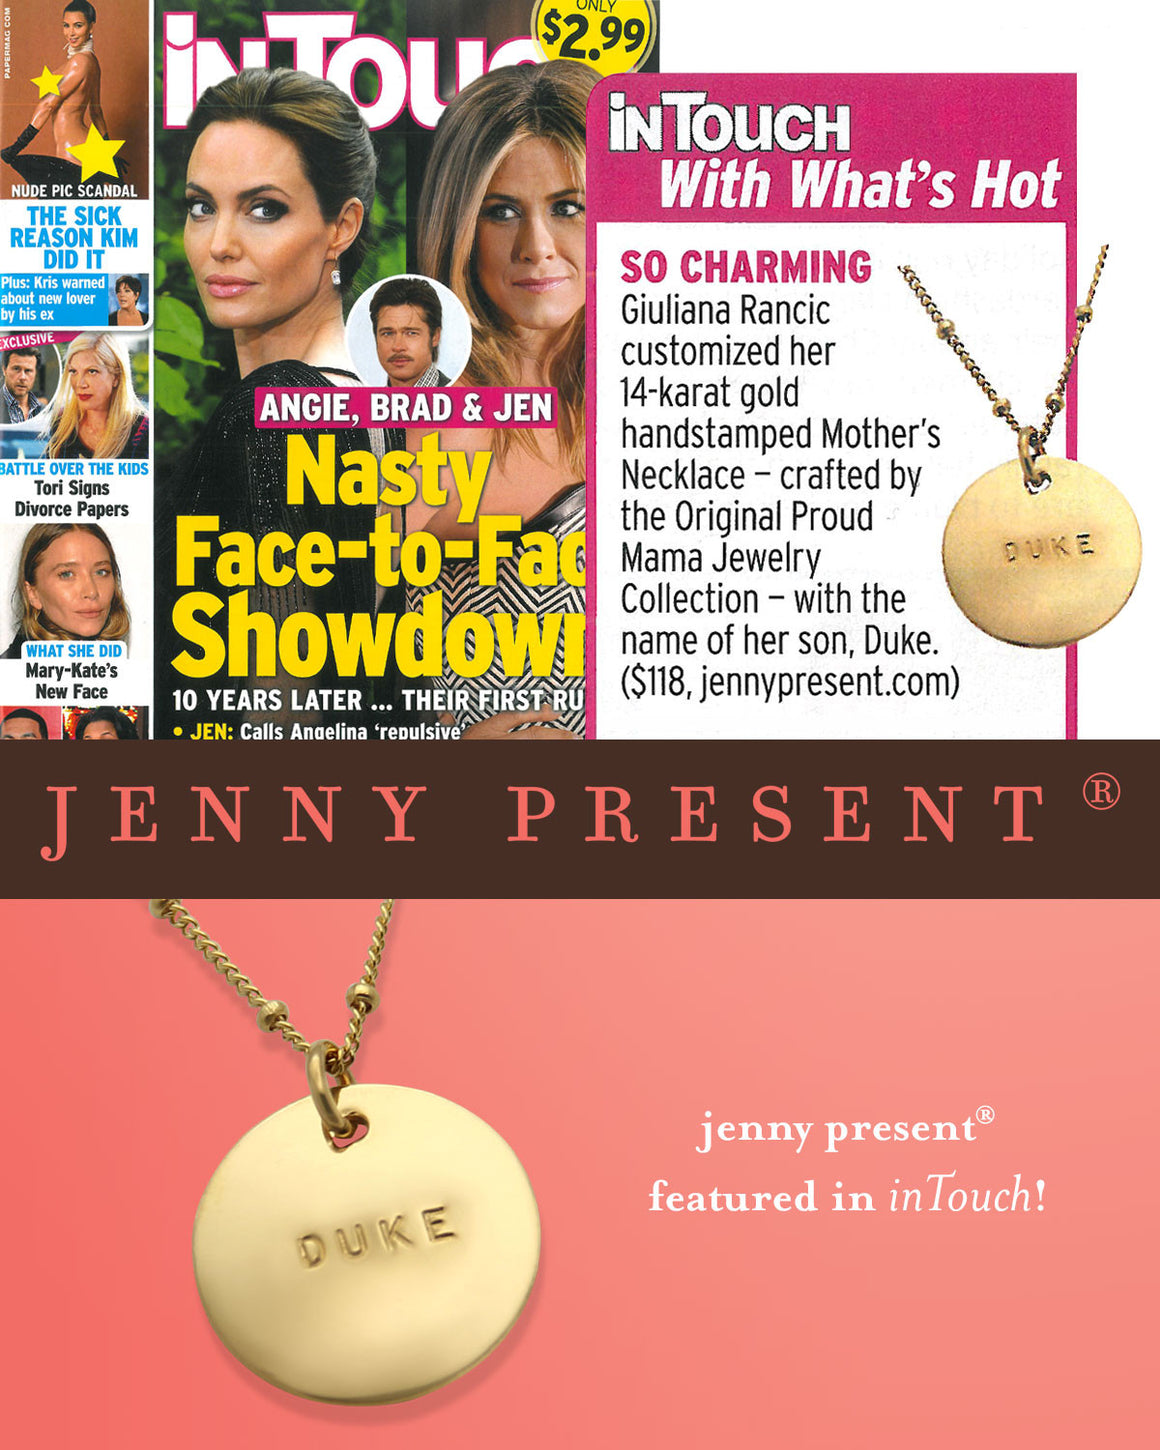 as seen in InTouch Magazine, celebrity jewelry, hand stamped gold personalized name necklace